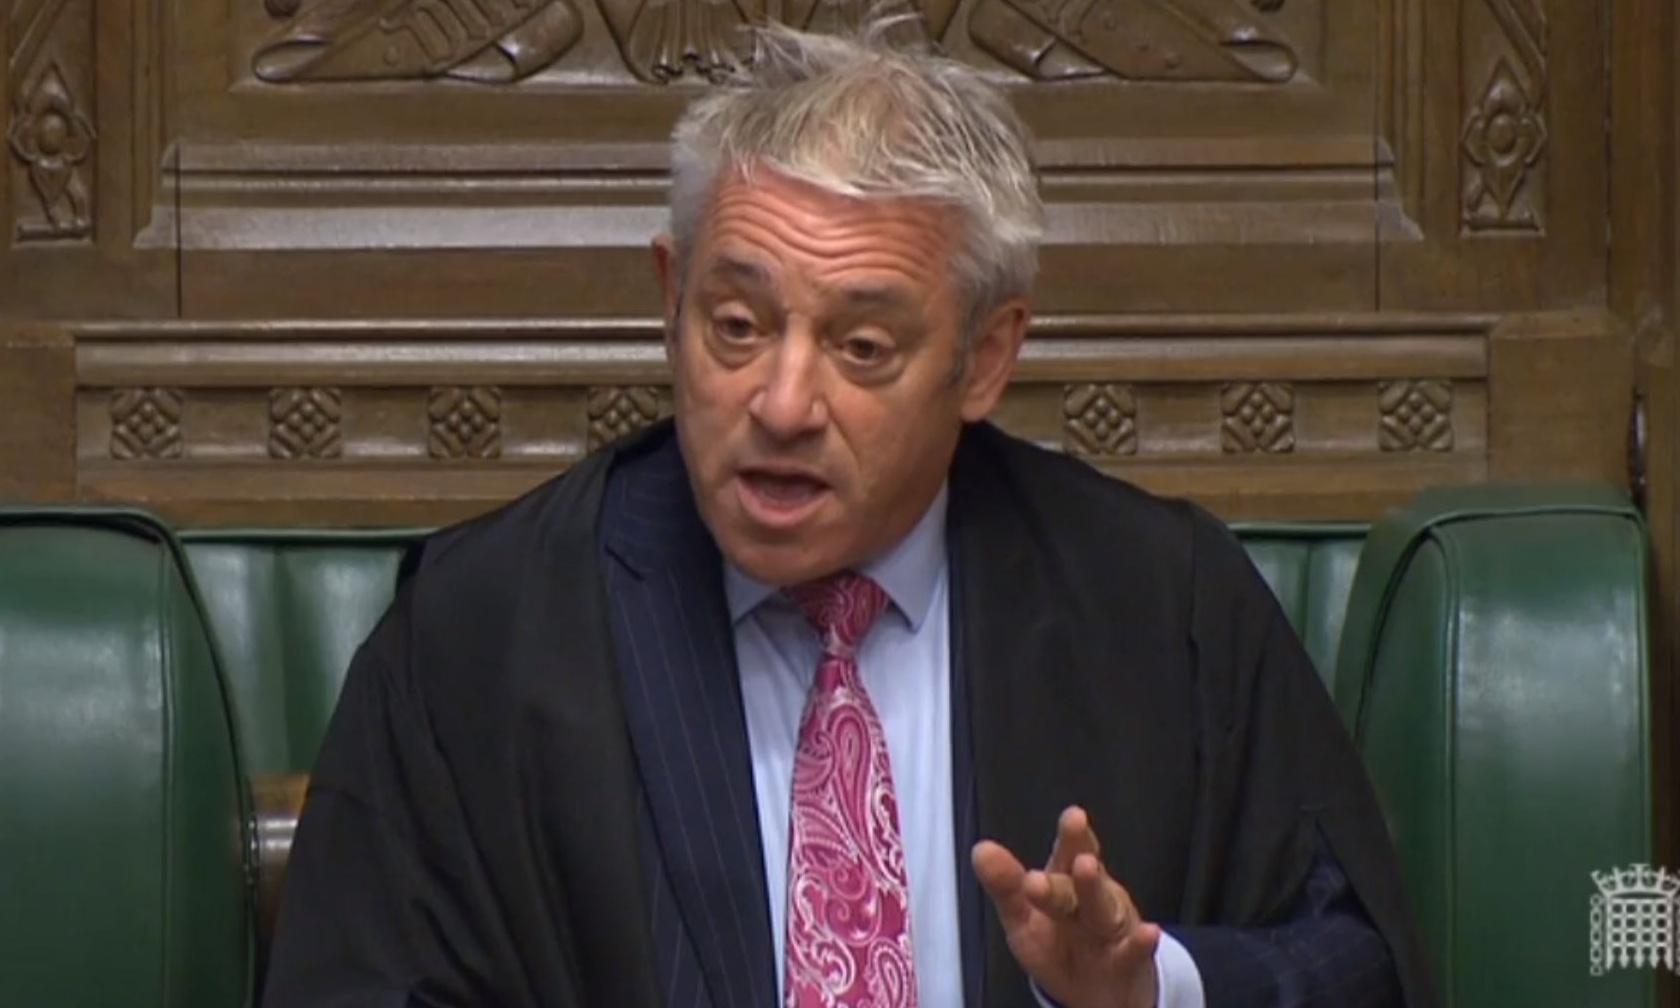 The Guardian view on John Bercow's departure: parliament needs a bold Speaker